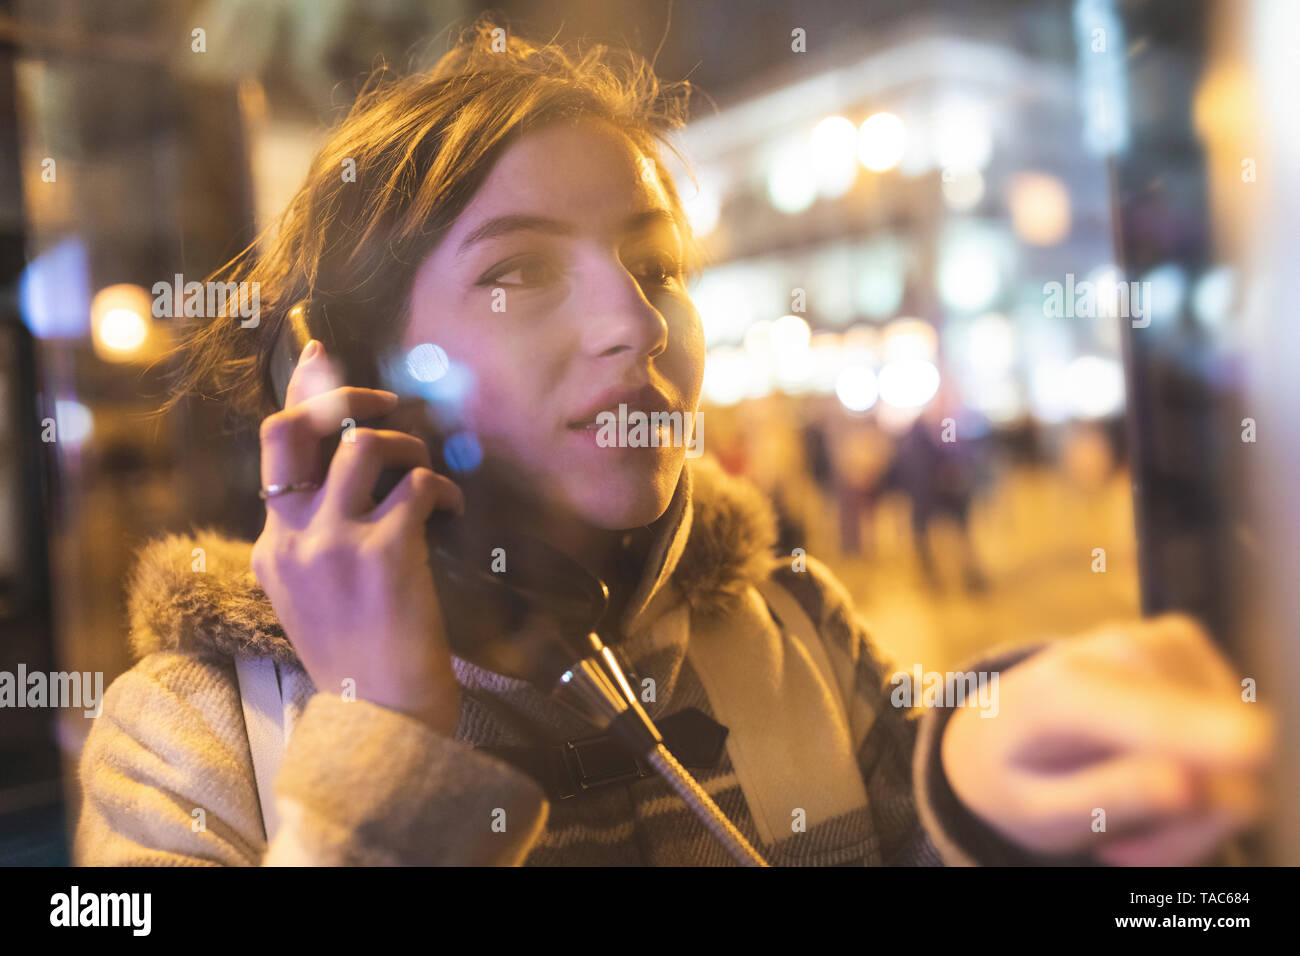 Spain, Madrid, young woman in the city using a phone box - Stock Image